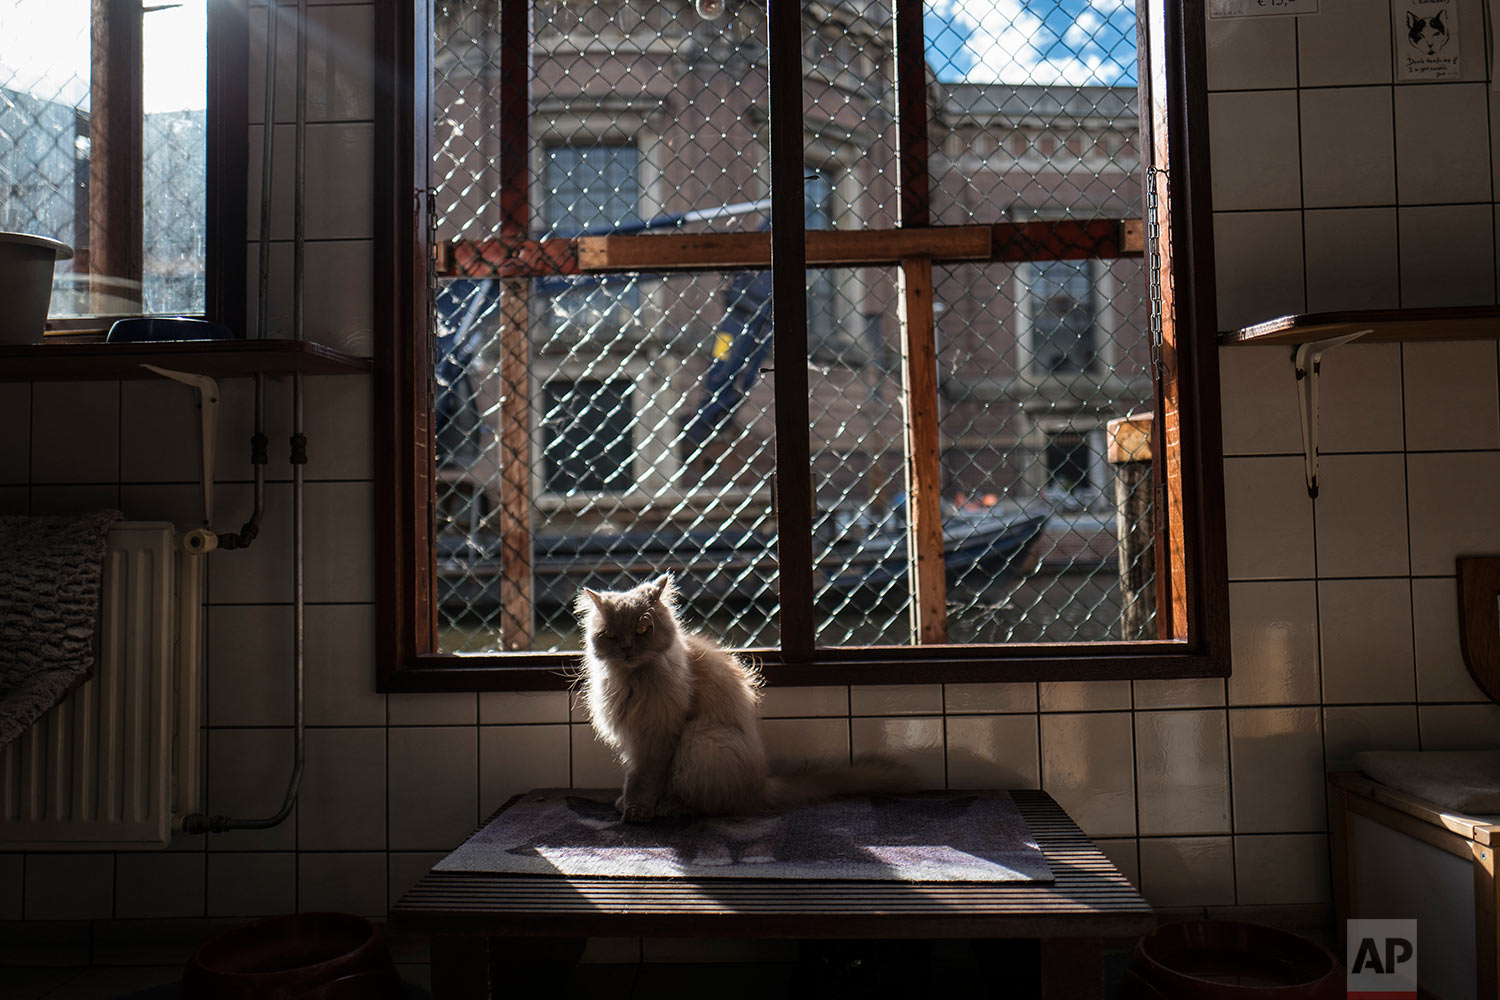 In this Wednesday, Aug. 2, 2017 photo, Kasumi, a 9-year-old cat sits in a spot of light at the Catboat shelter in Amsterdam, Netherlands. (AP Photo/Muhammed Muheisen)